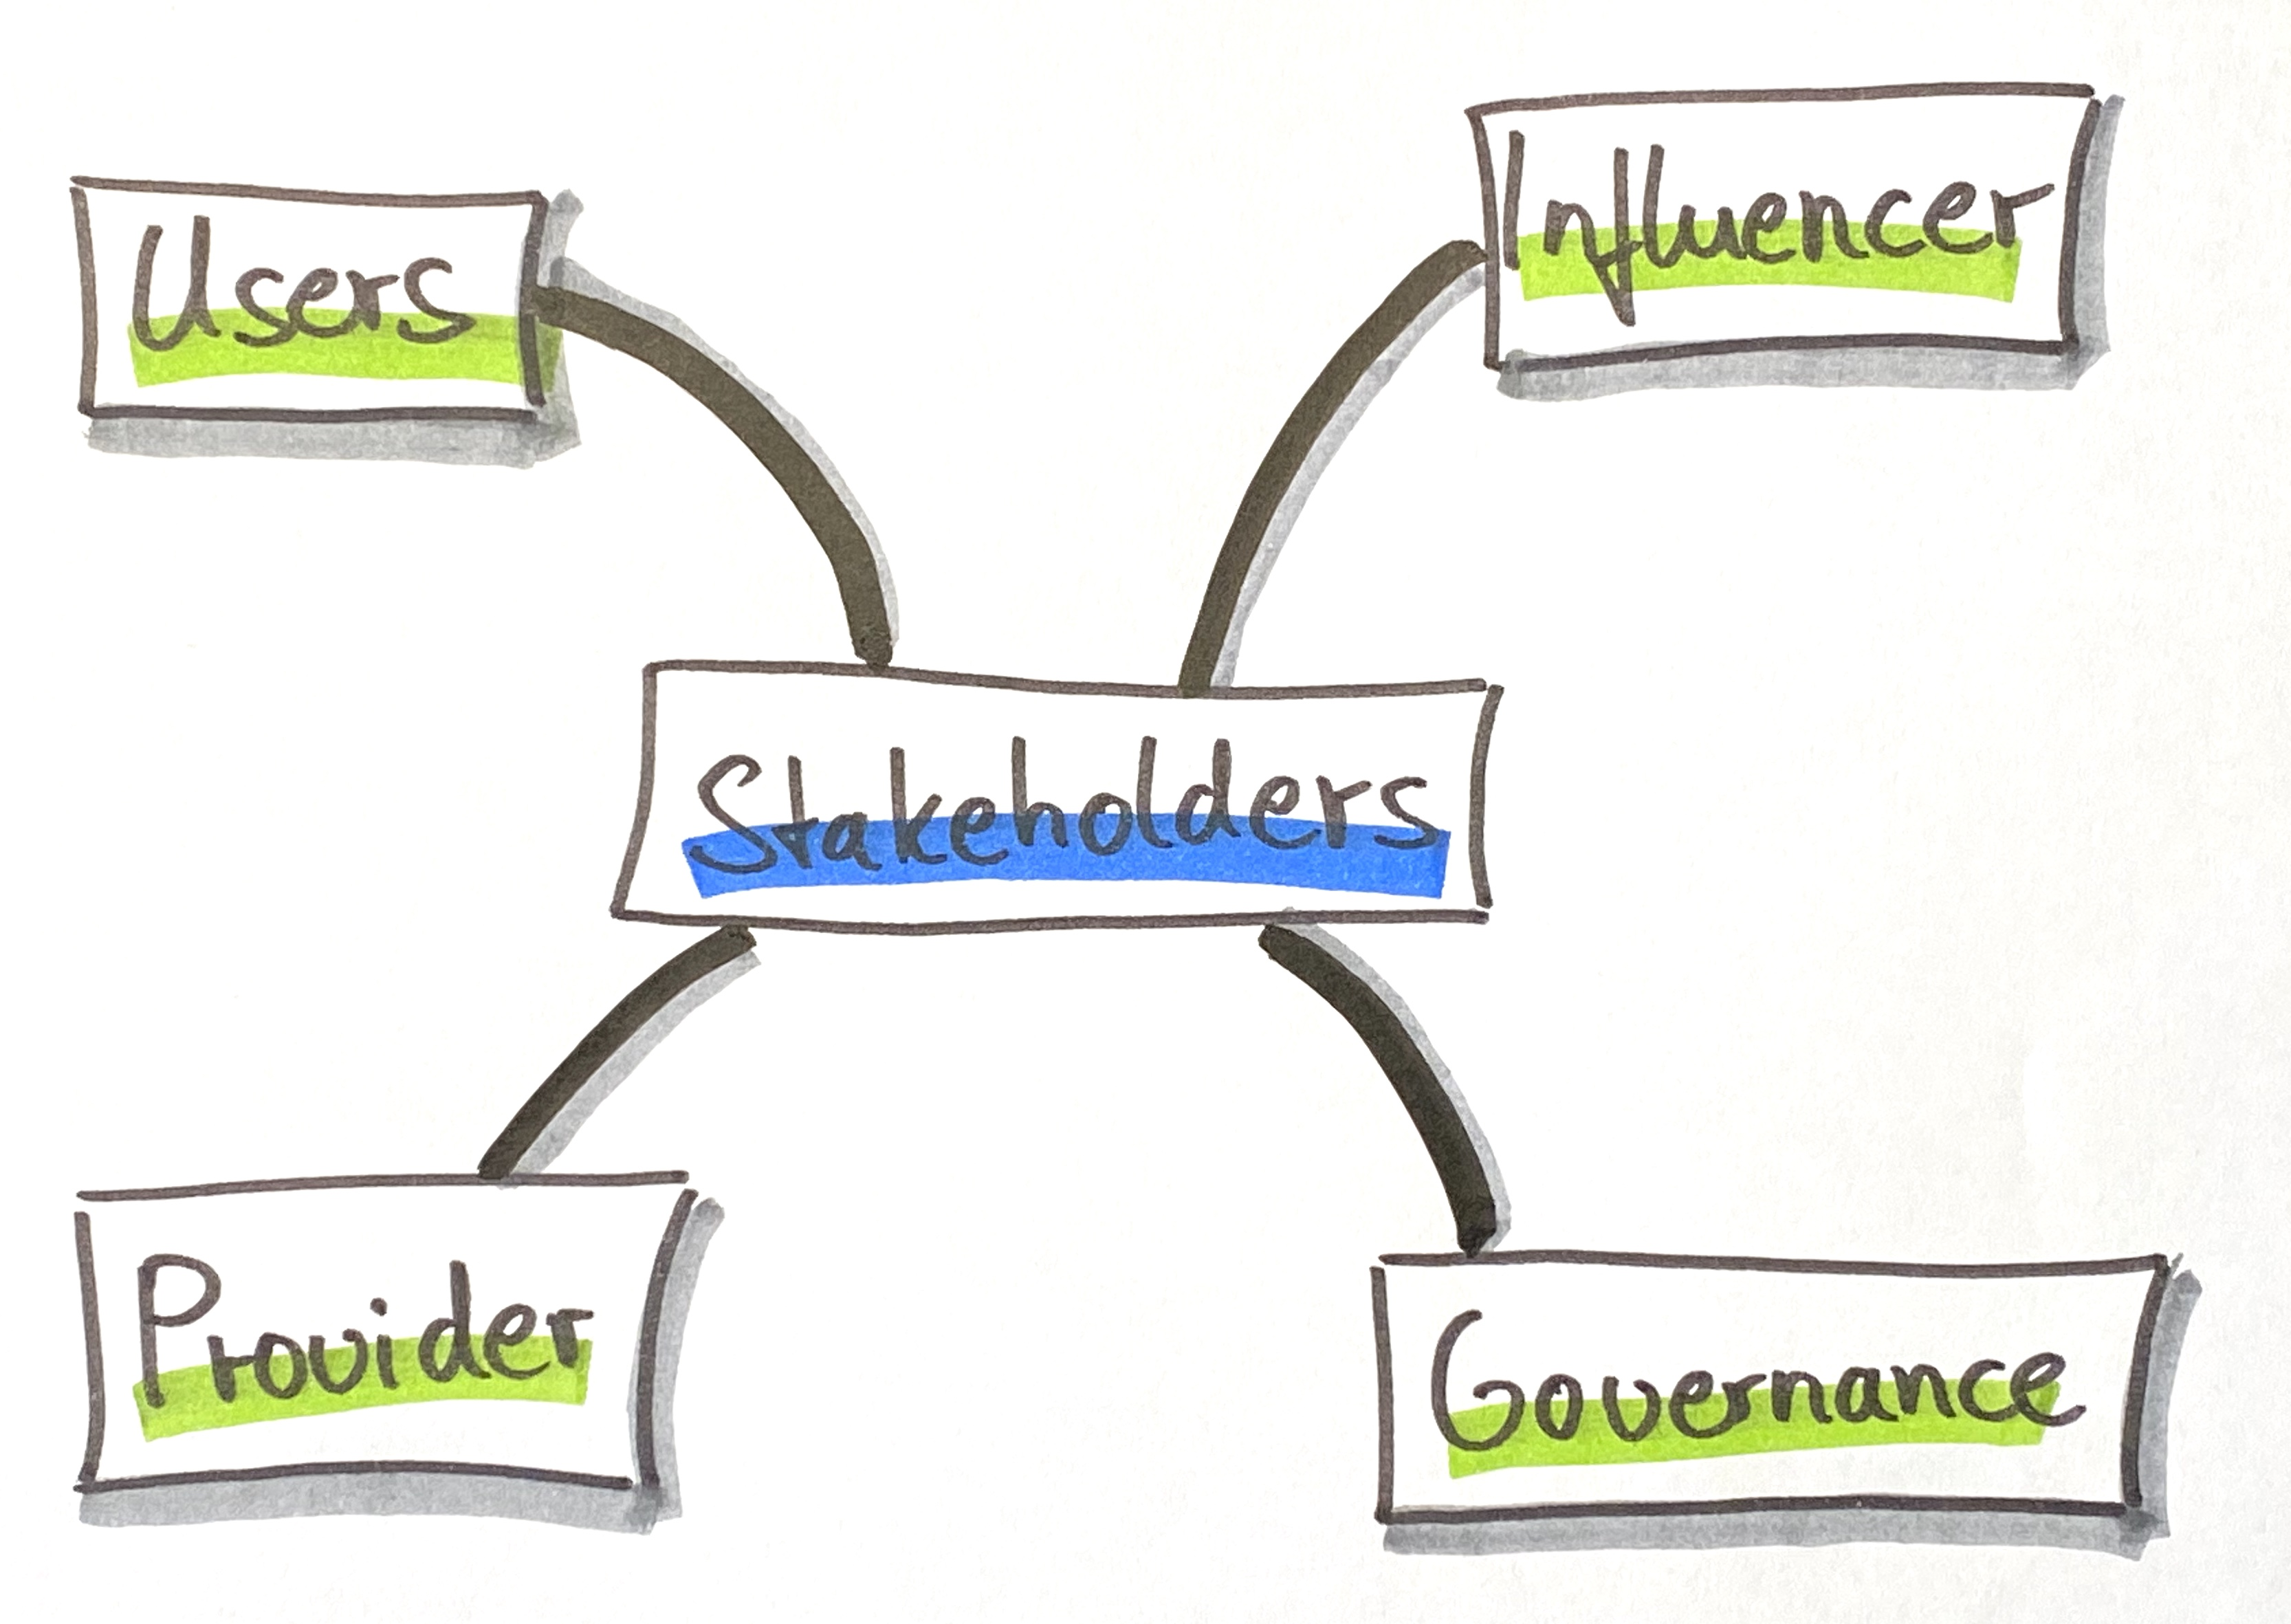 Stakeholder groups model